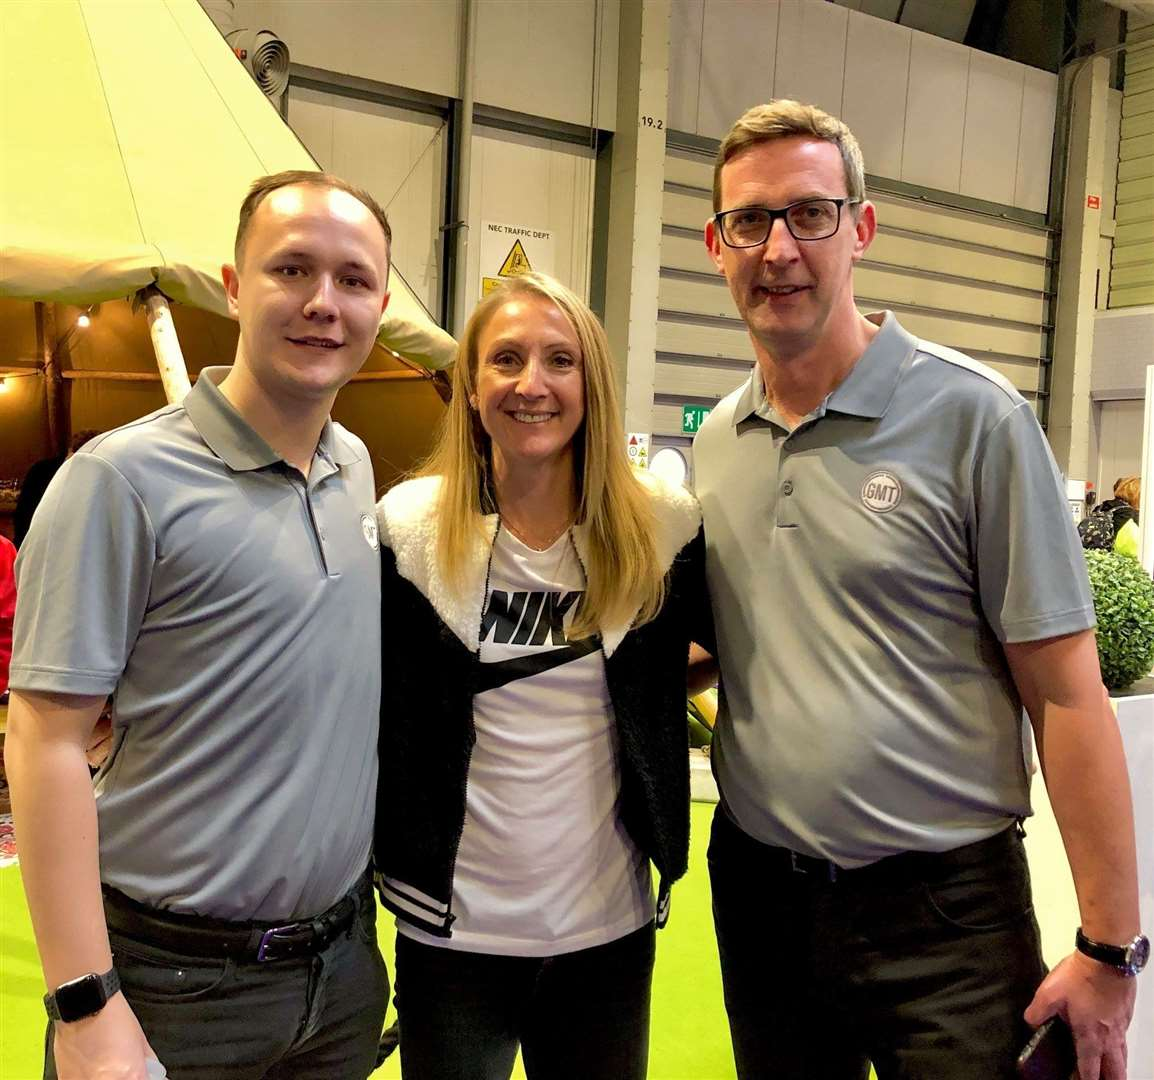 George Cummins, left, and Scott Barton have supported Paula Radcliffe